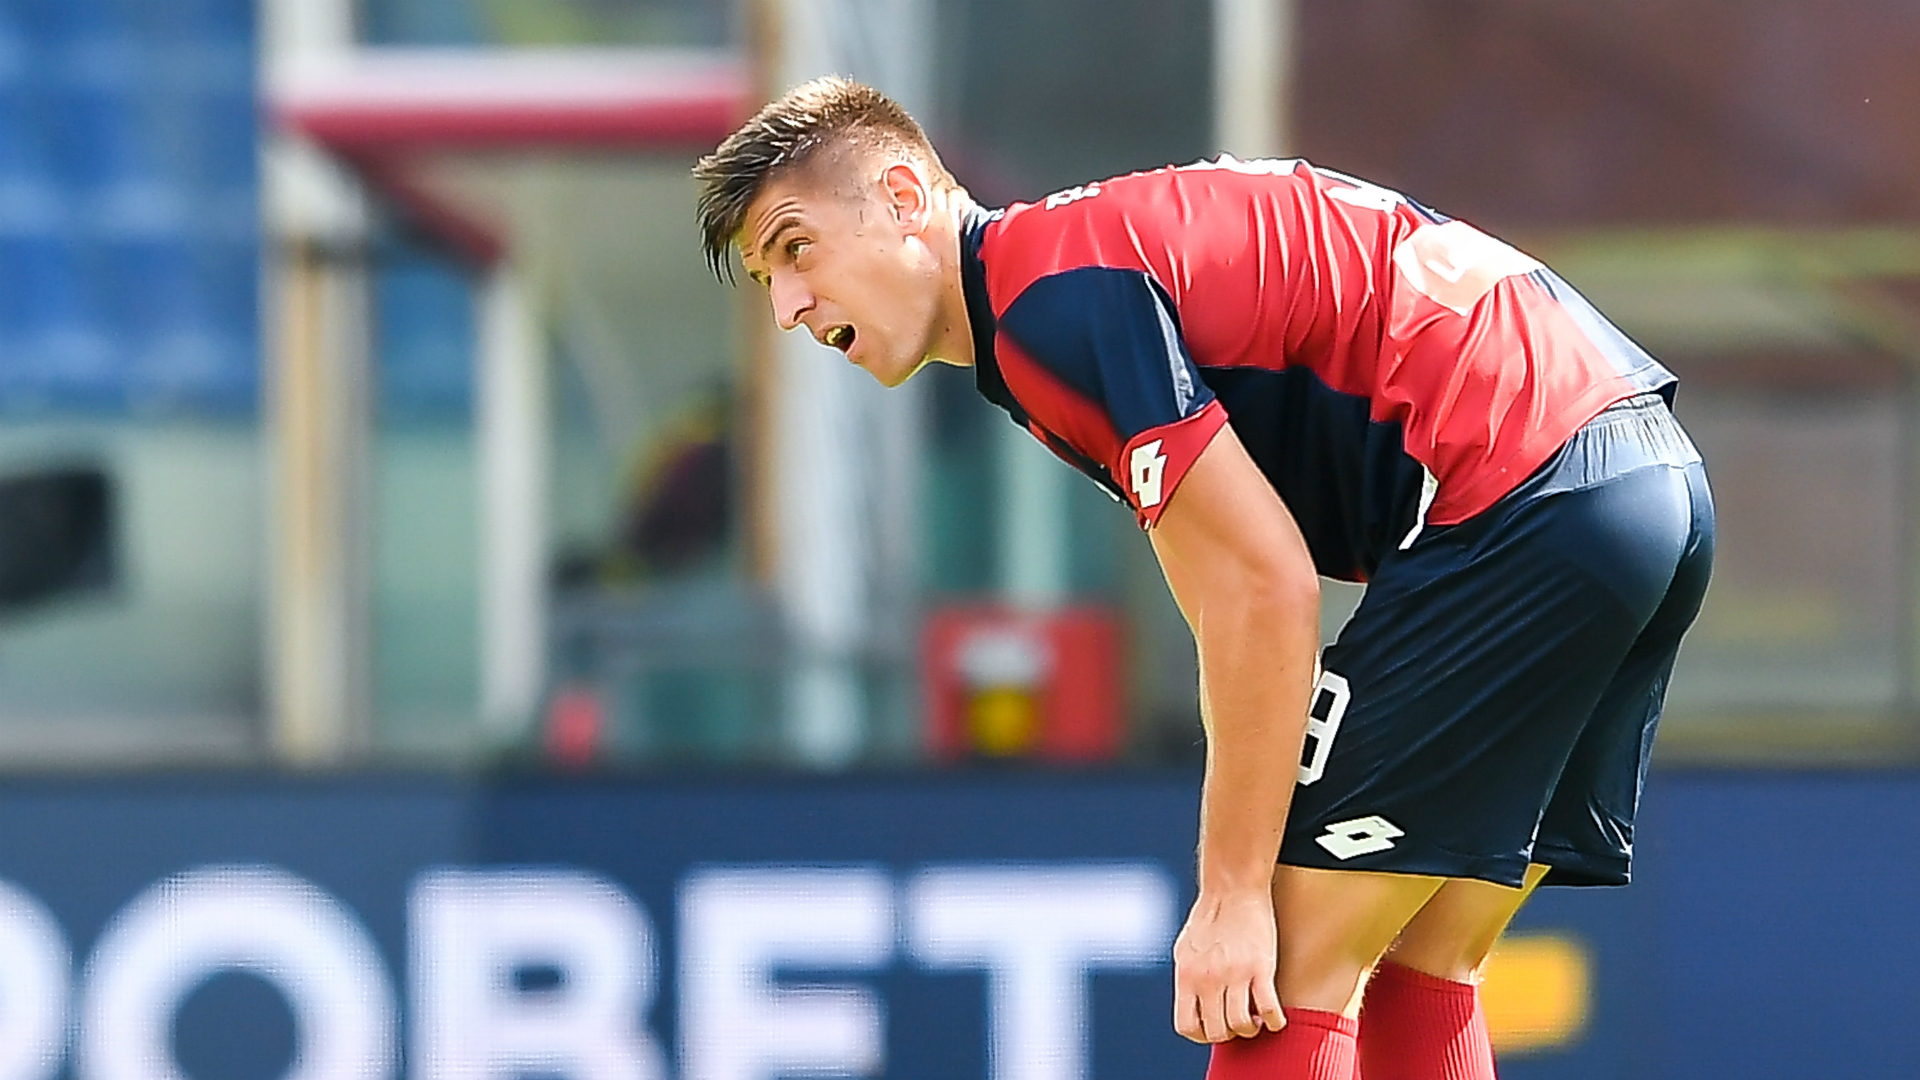 De Laurentiis: I've spoken to Genoa and agent about Piatek